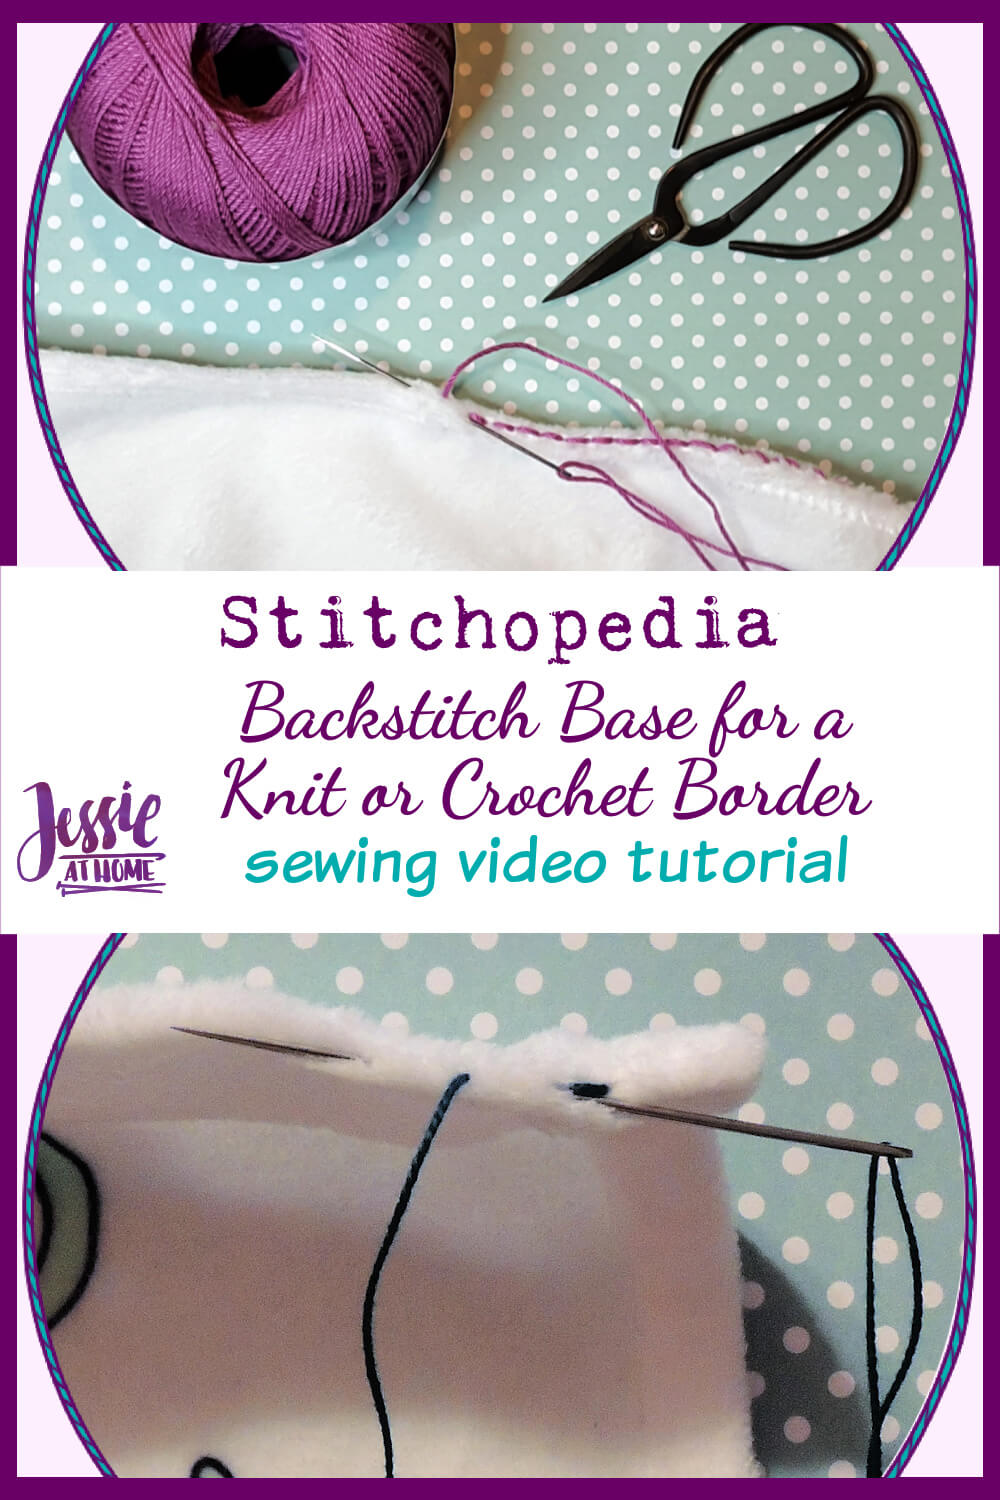 Backstitch Base for a Knit or Crochet Border on Fabric